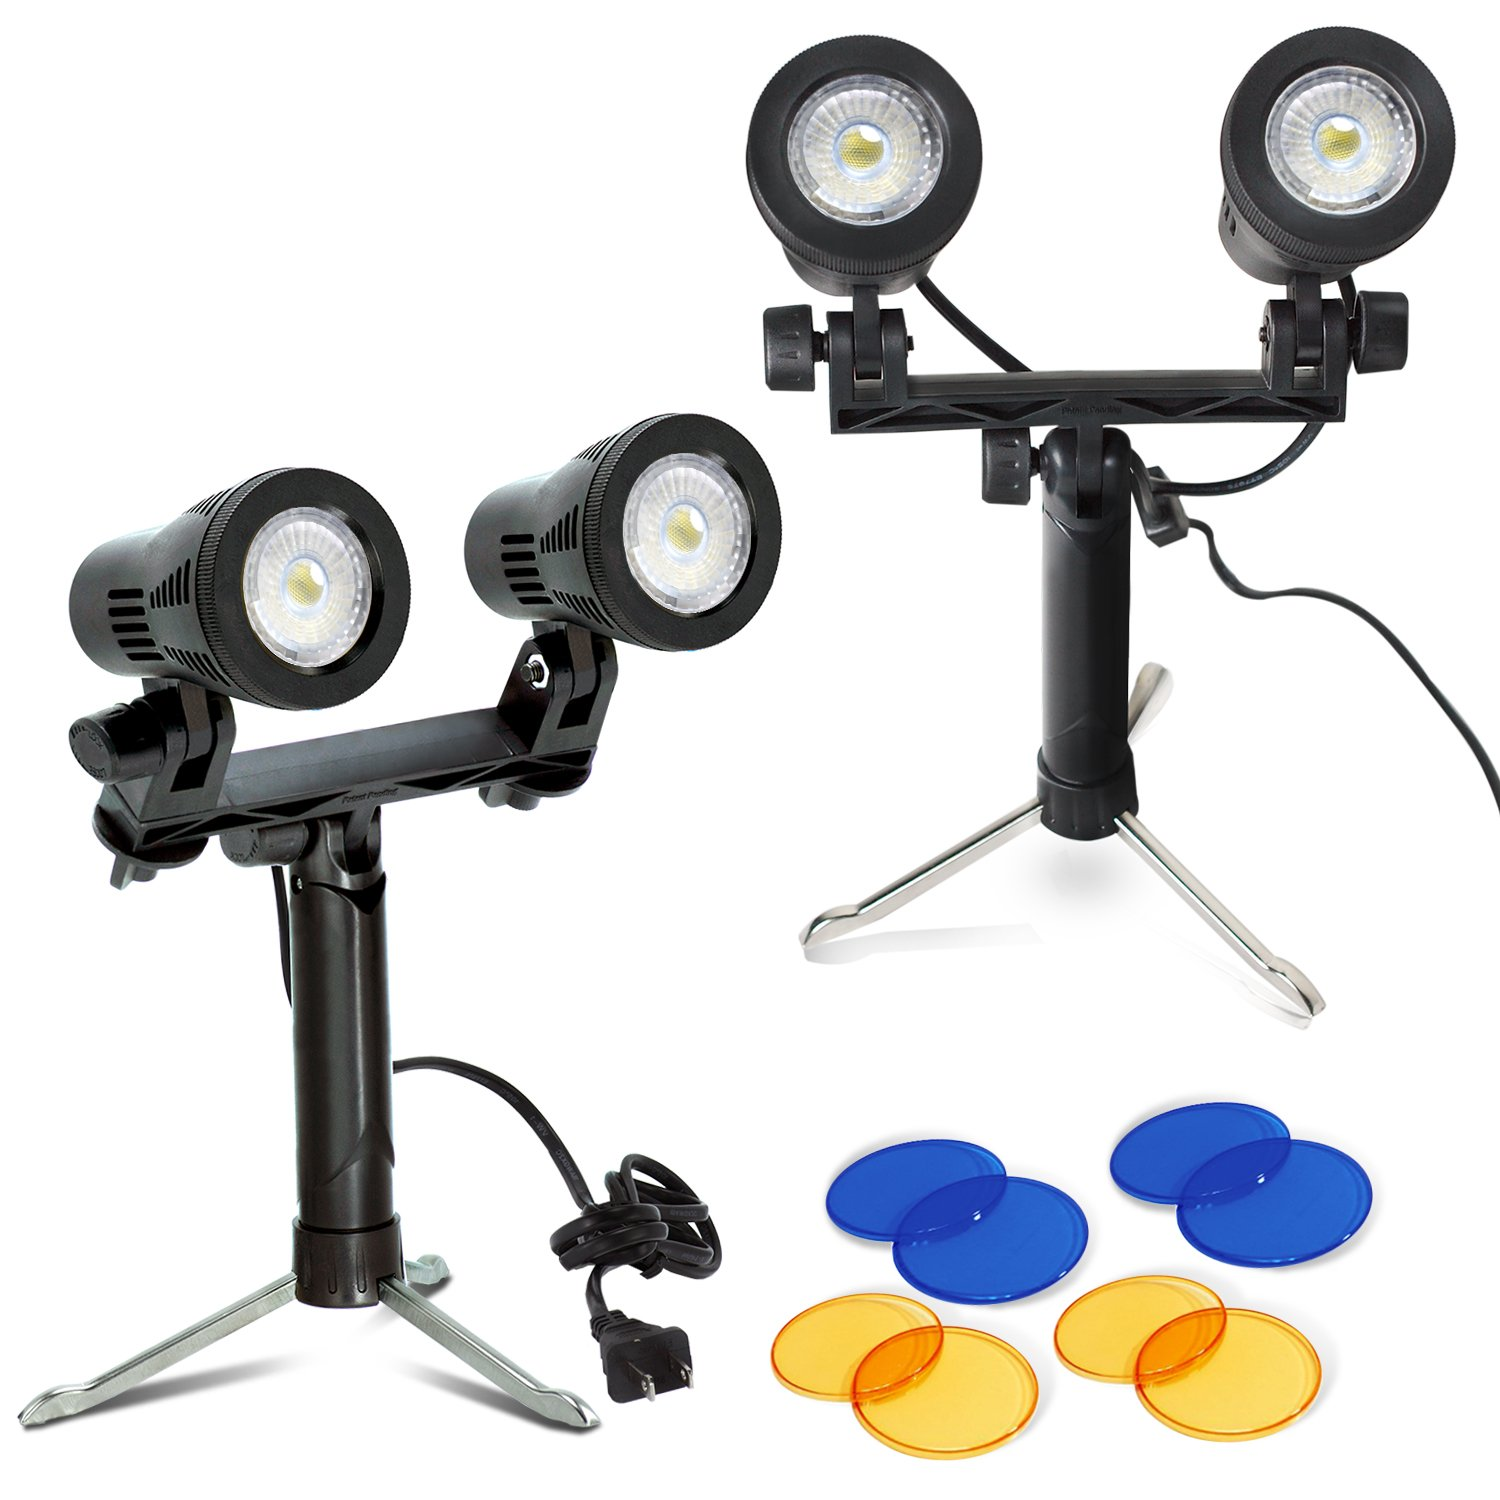 Julius Studio 2 sets Portable Continuous Double Head LED Light, Table Top Mini Lighting Kit with Blue and Yellow Color Gel Filters, Photography Video Studio Set, JSAG374 by Julius Studio